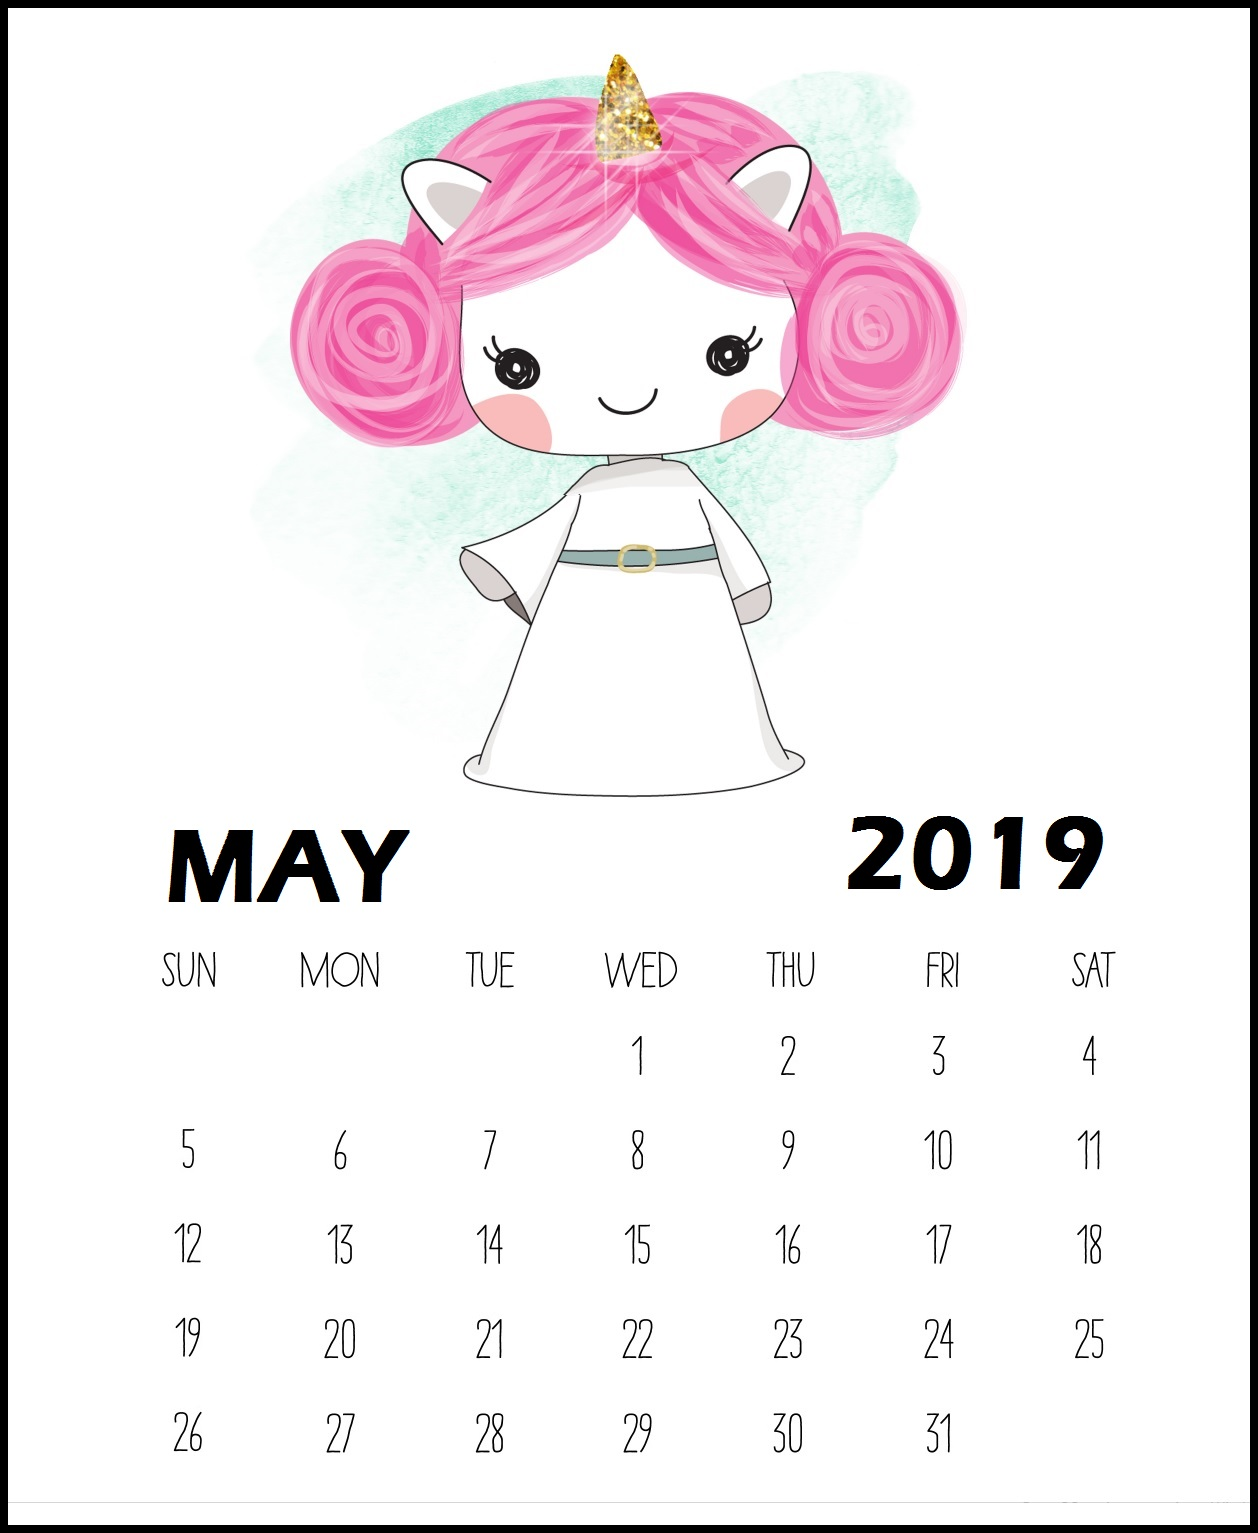 Cool May 2019 Calendar To Print